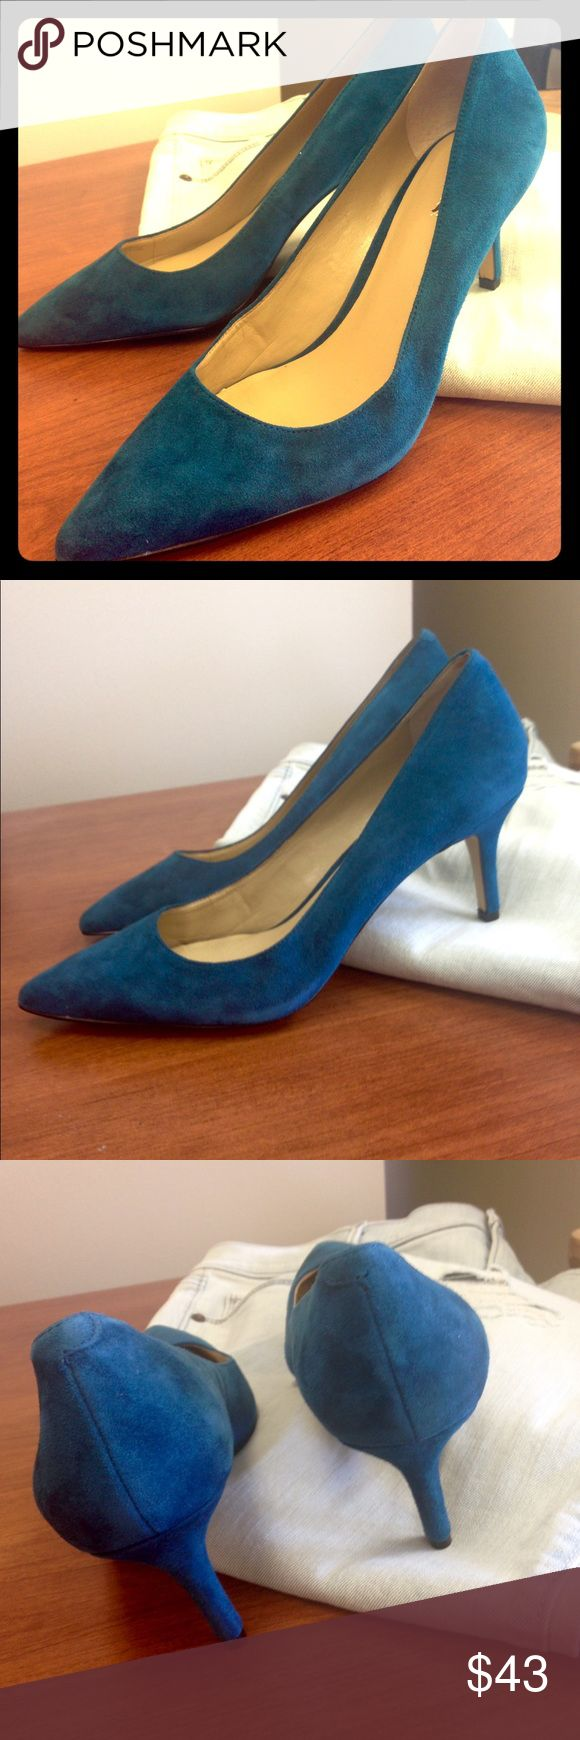 NWT Ann Taylor dark blue spruce pumps Flawless, velvety finish to these classy pumps. Besides scuffing on bottoms these are immaculate. Unique teal color. Ann Taylor Shoes Heels